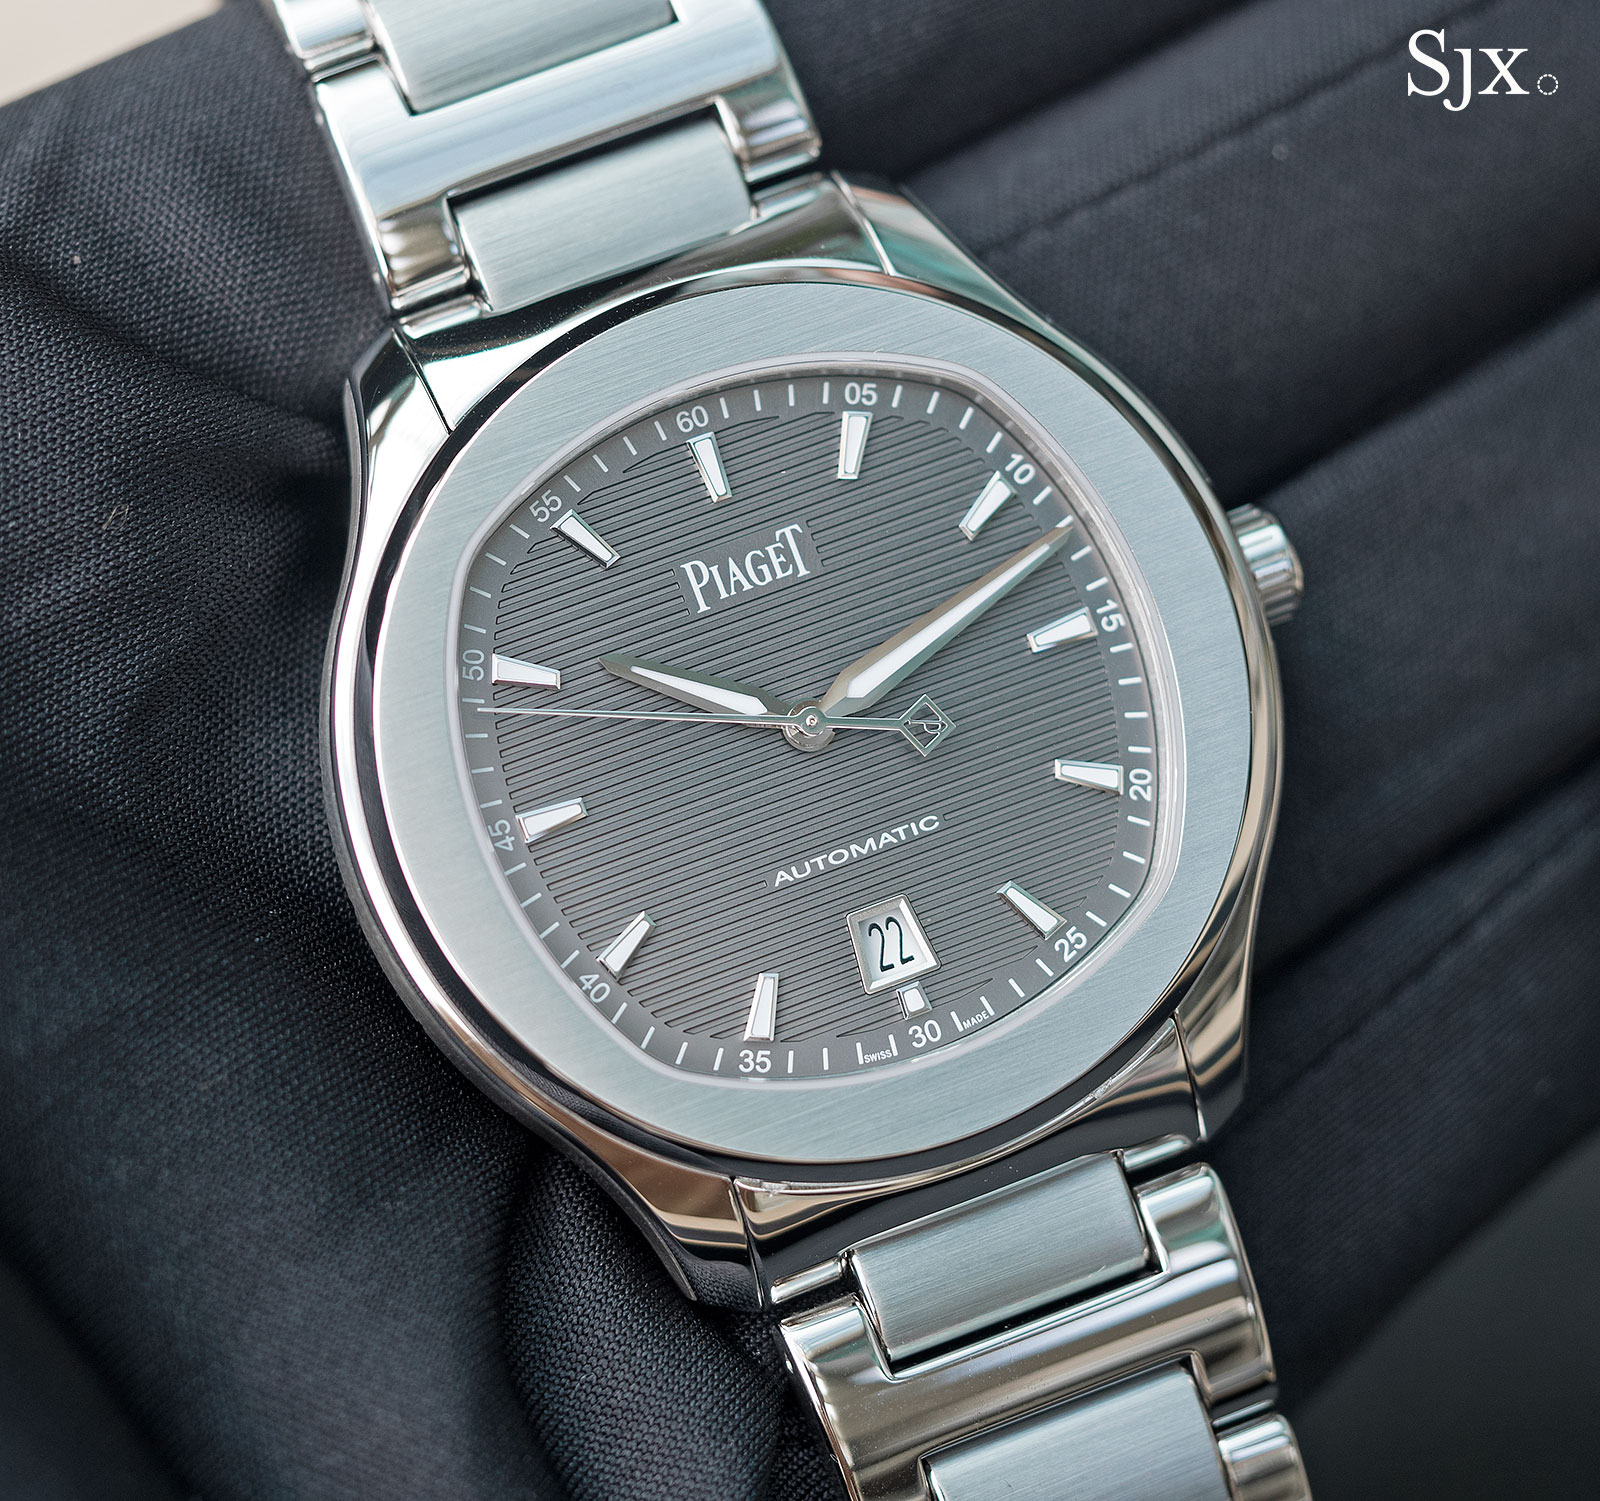 Piaget Polo S Automatic 4